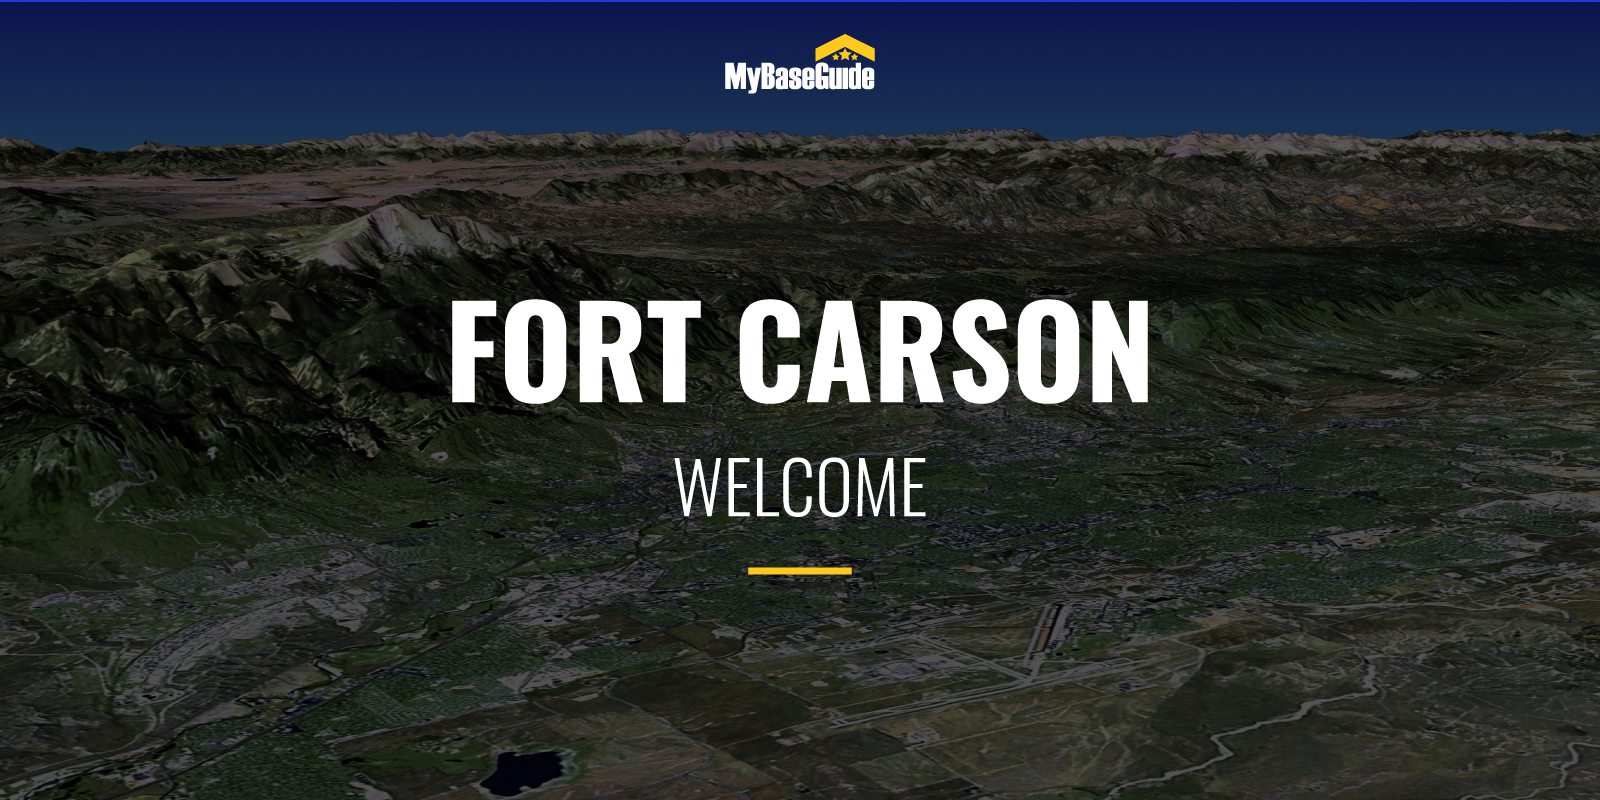 Welcome Fort Carson